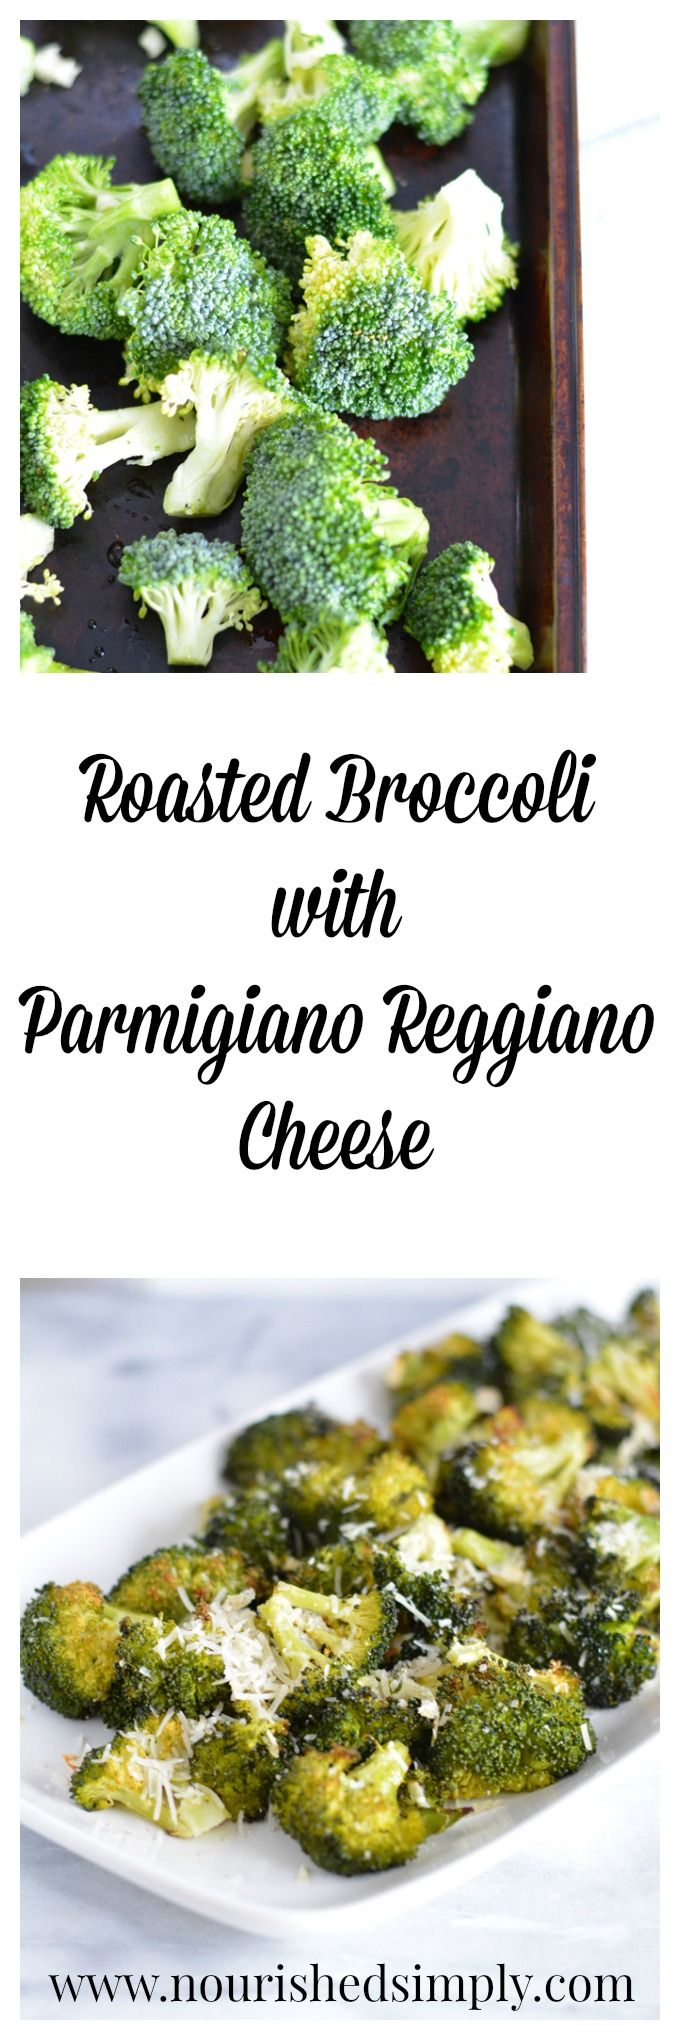 Roasted Broccoli with Parmigiano Reggiano Cheese lets you enjoy broccoli with cheese without the extra calories of traditional broccoli with cheese sauce.